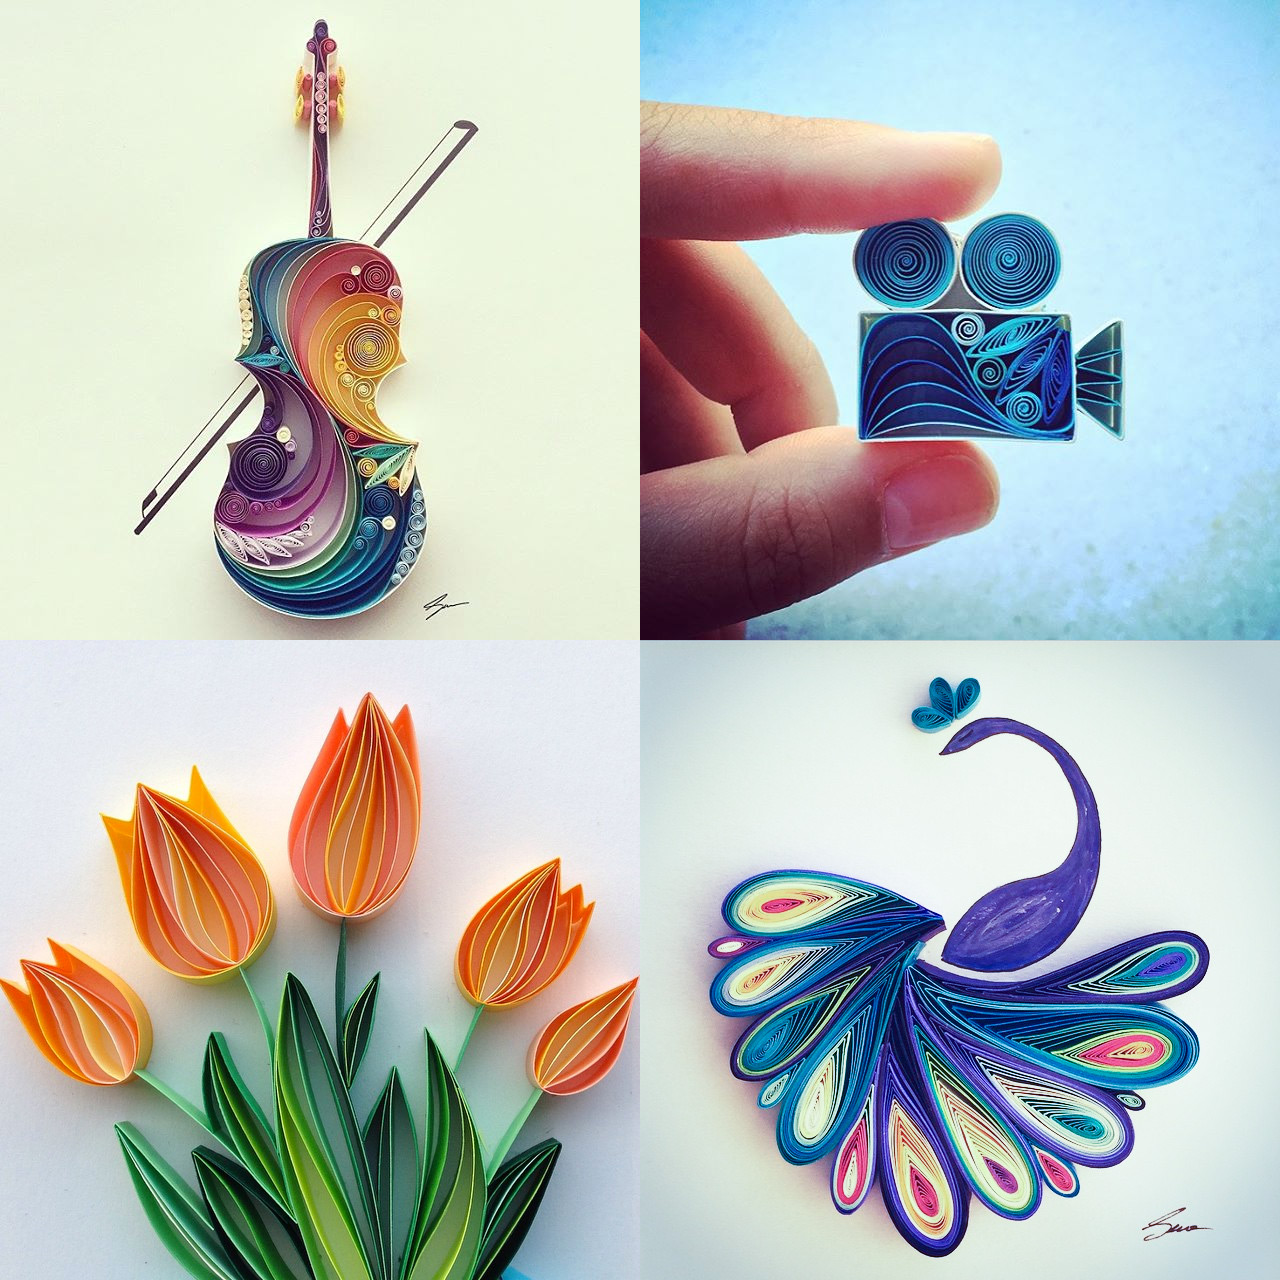 Colorful Quilled Paper Designs by Sena Runa